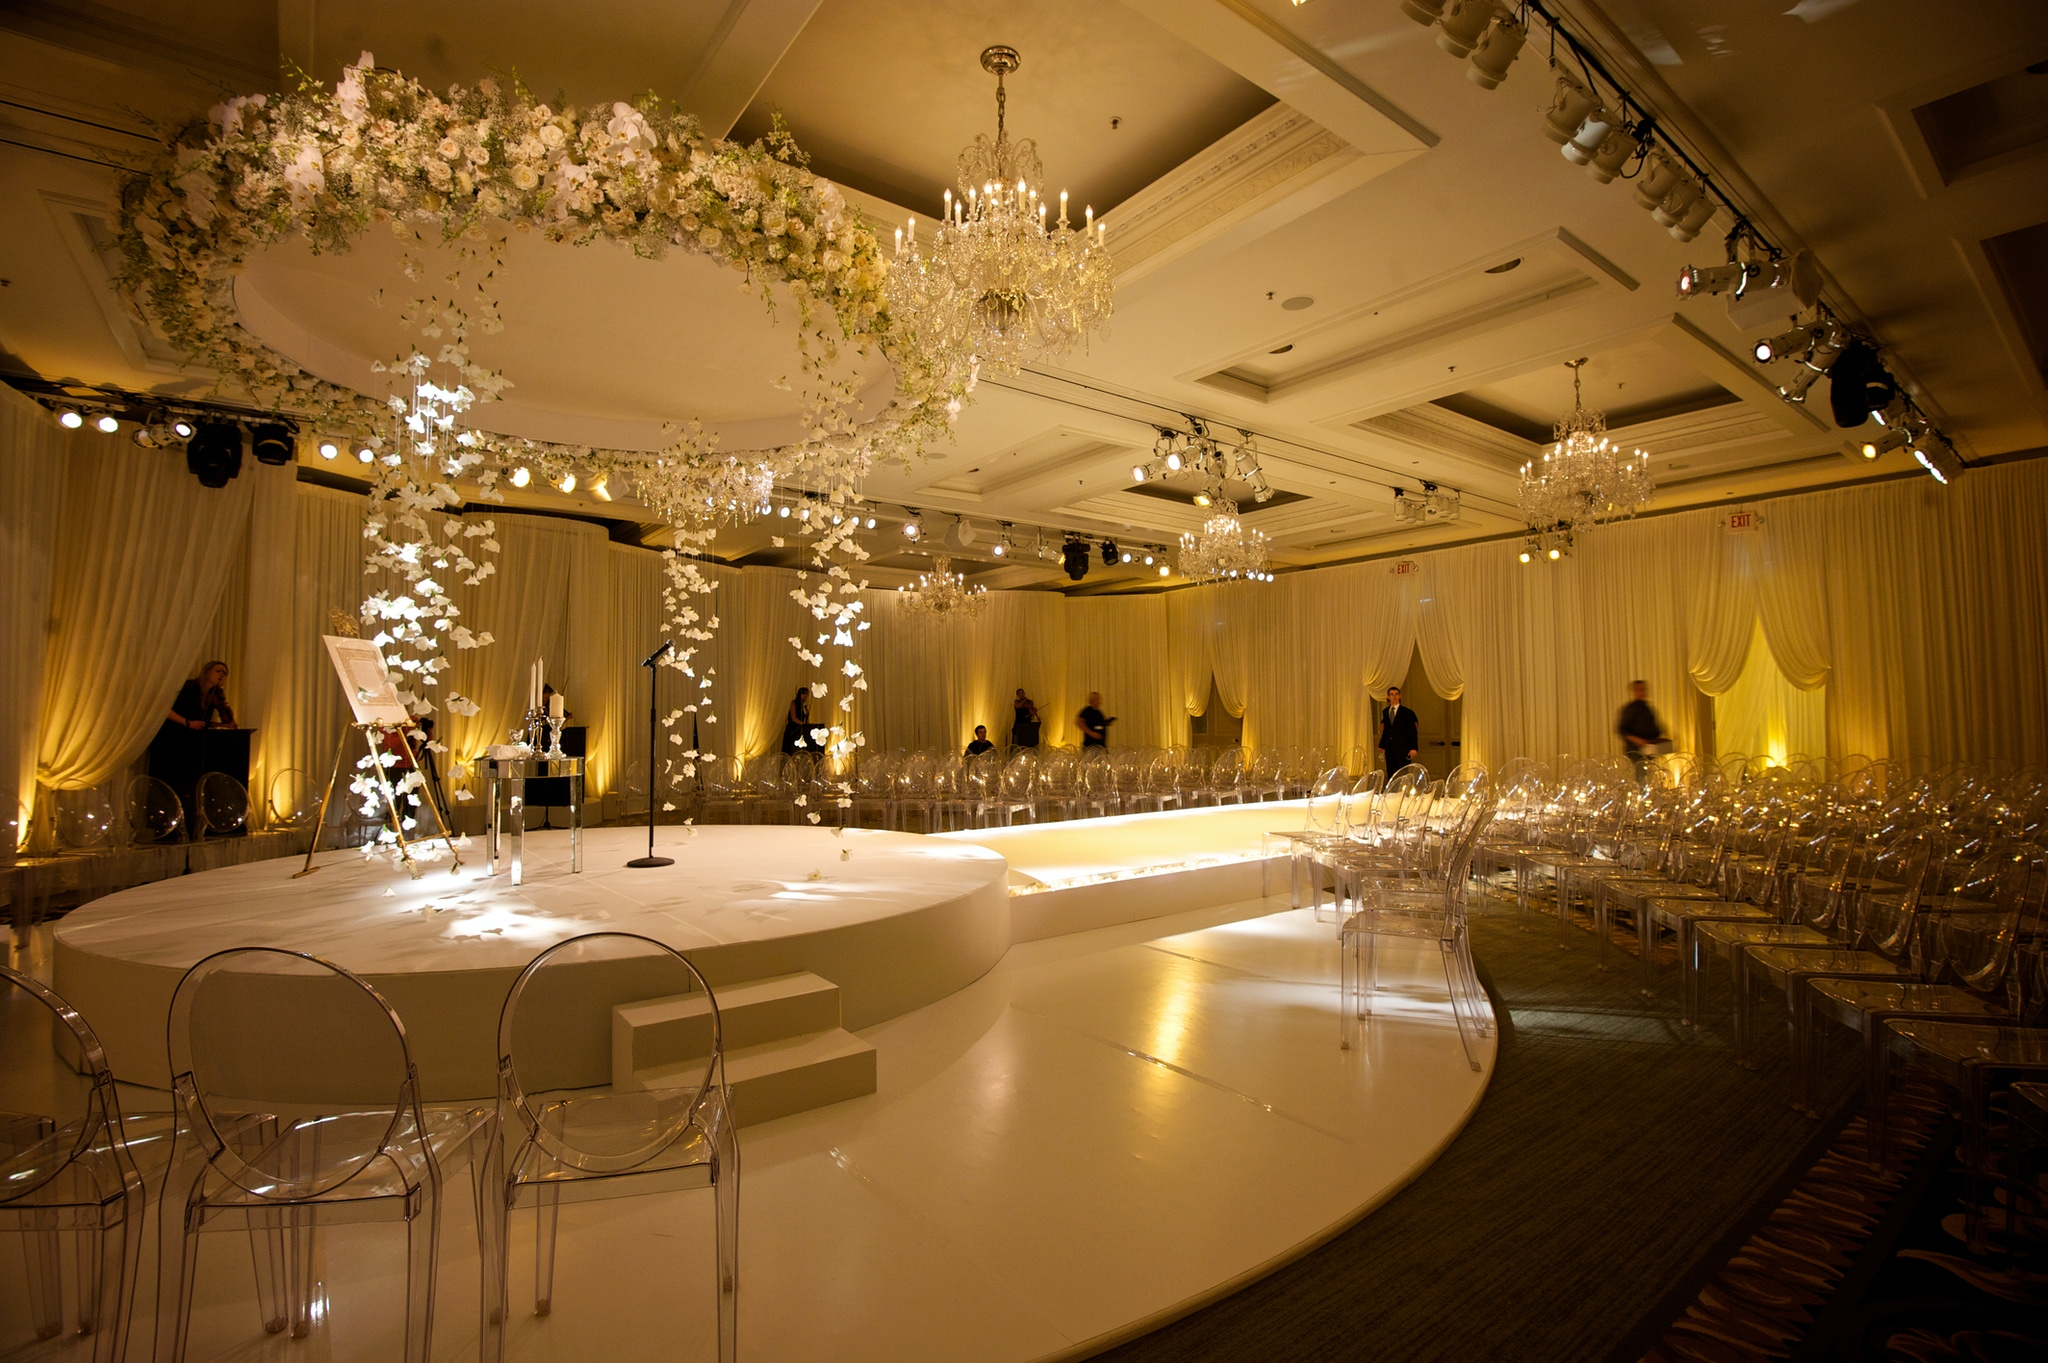 Wedding Aisle Ideas - Four Seasons Hotel Chicago